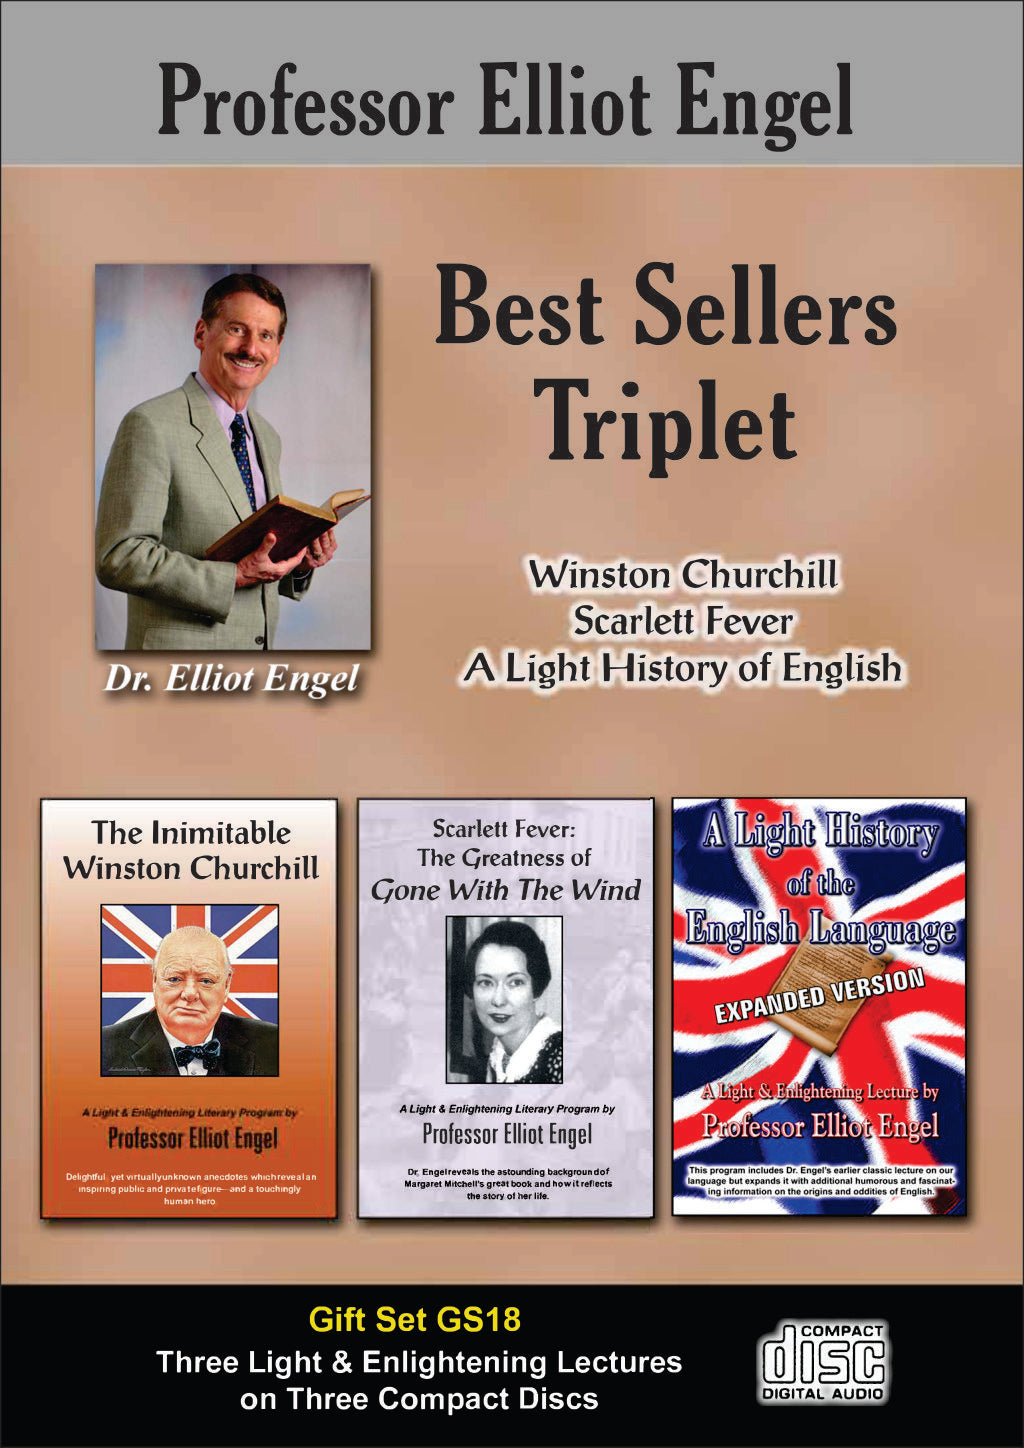 Best Sellers Triplet (3 CD Gift Set)